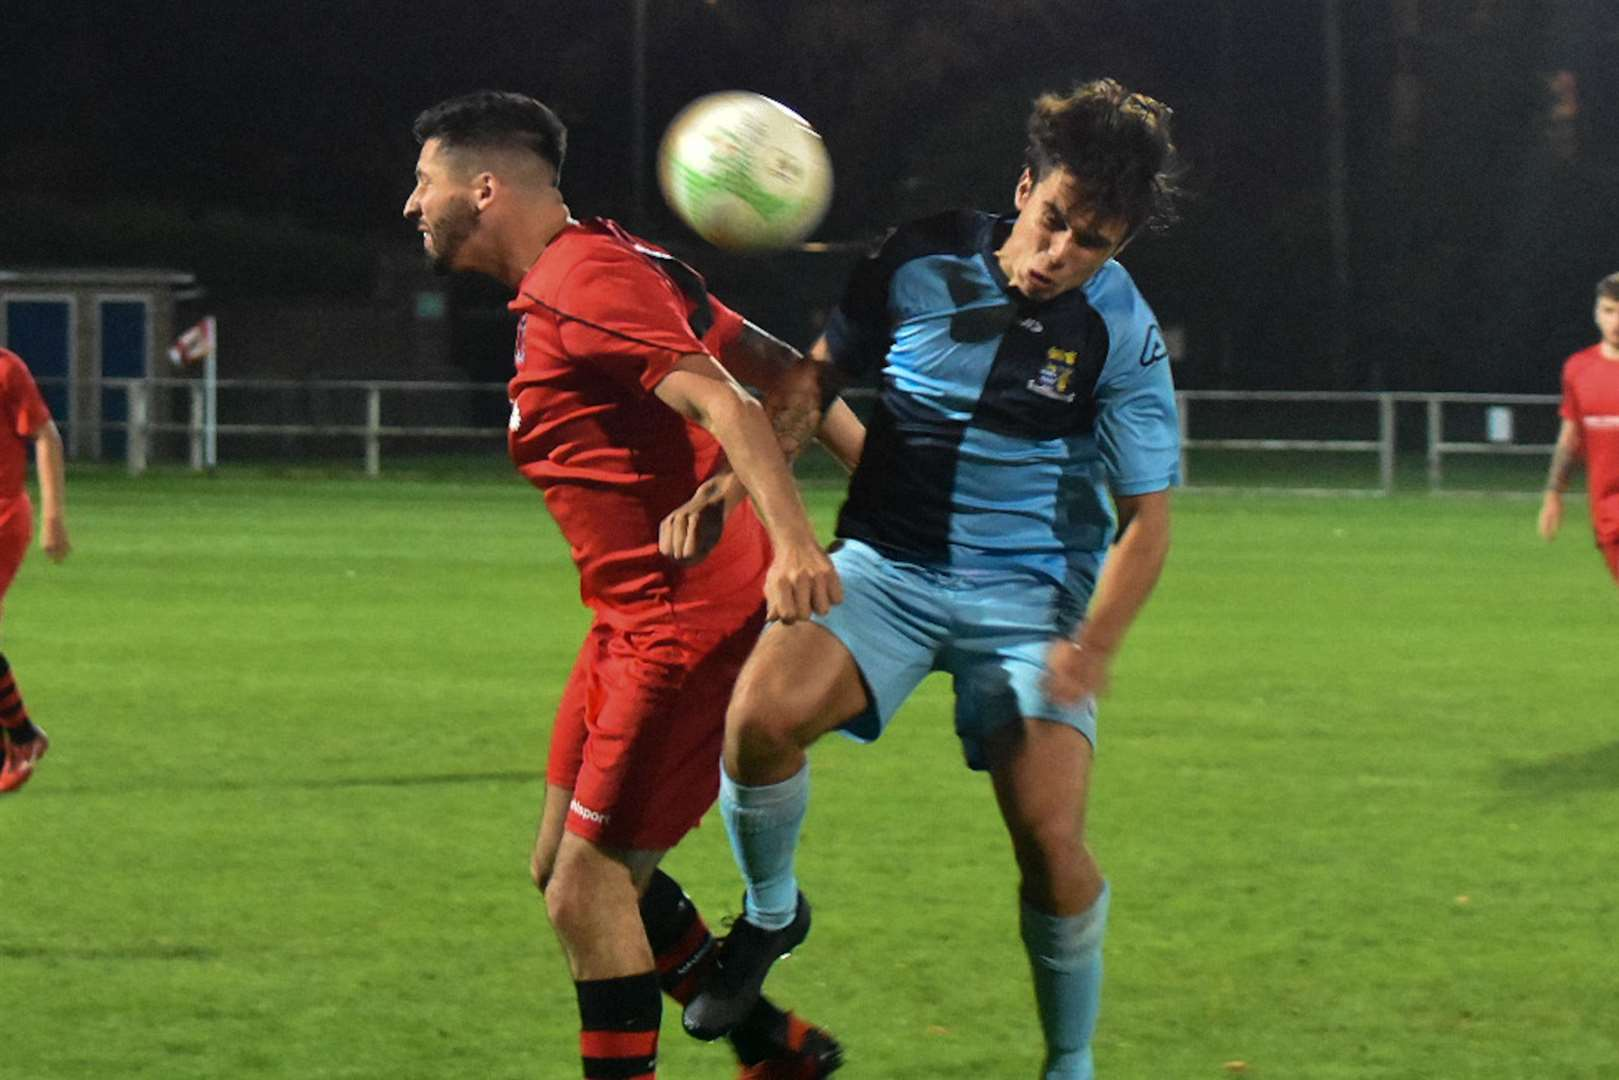 St Neots knocked Pinchbeck out of the FA Cup. Photo by Alexandra Gomes.